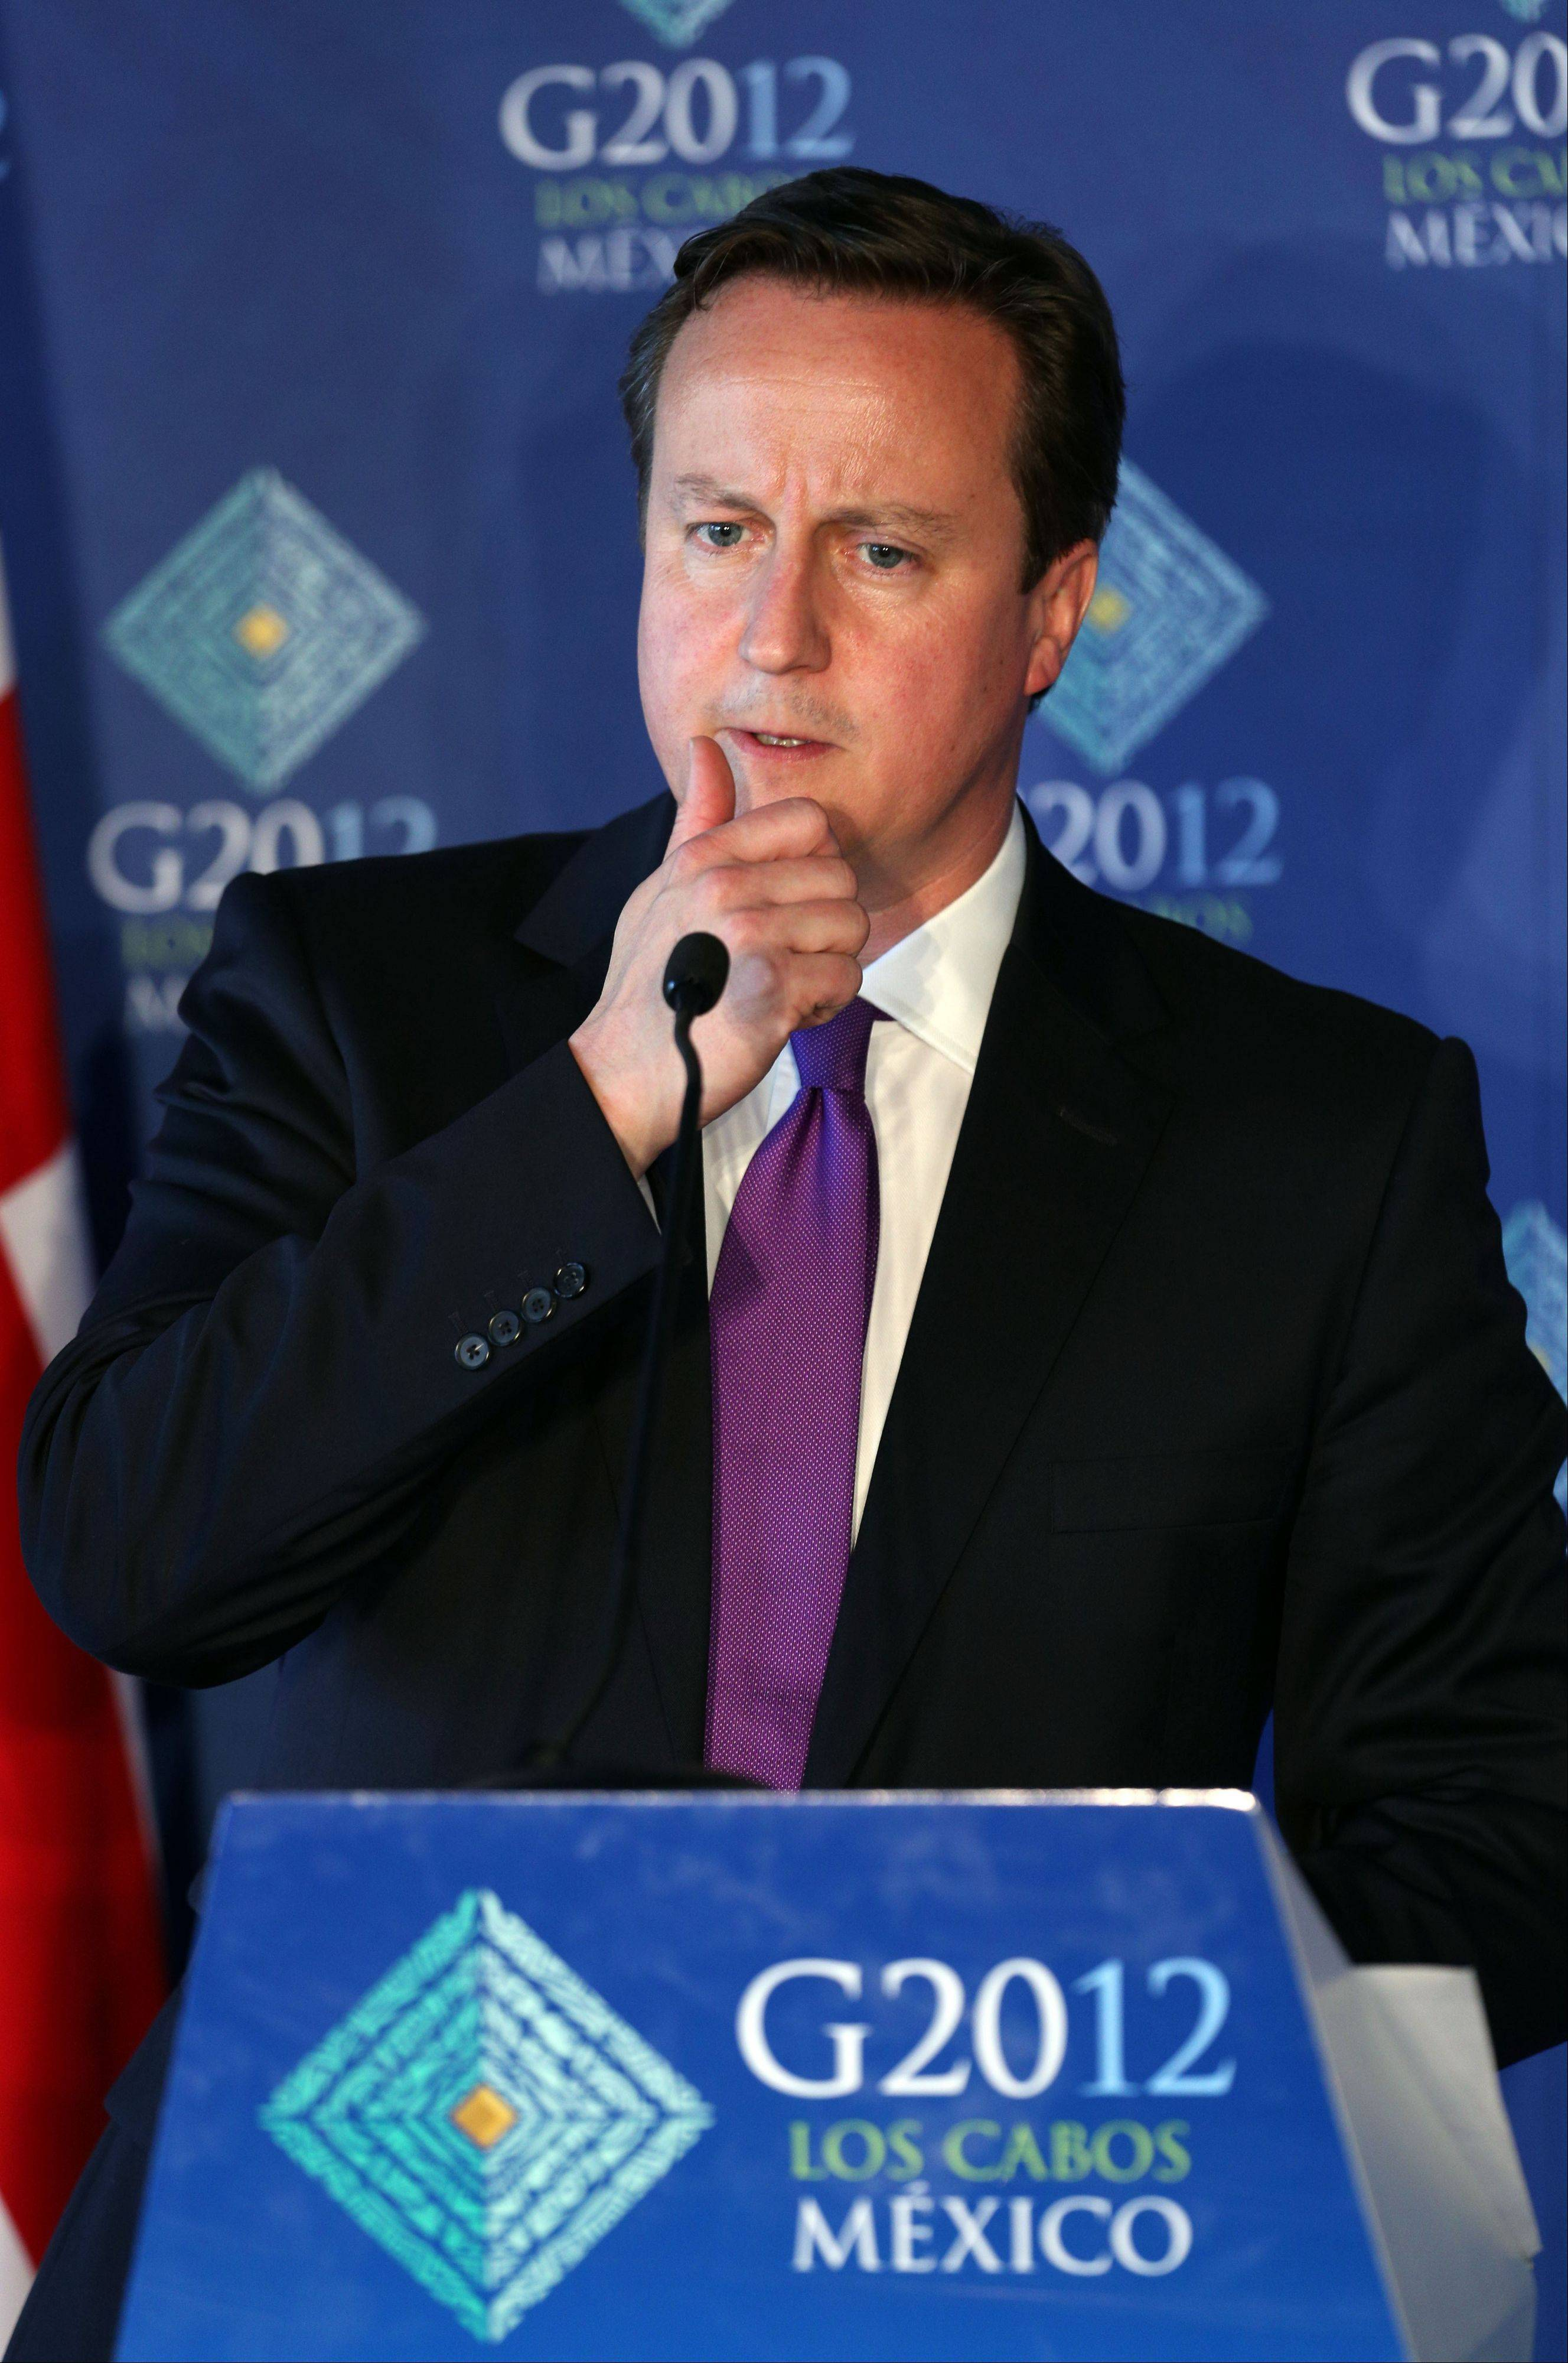 Associated PressBritish Prime Minister David Cameron ponders a question Tuesday during a news conference at the G-20 summit in Los Cabos, Mexico.